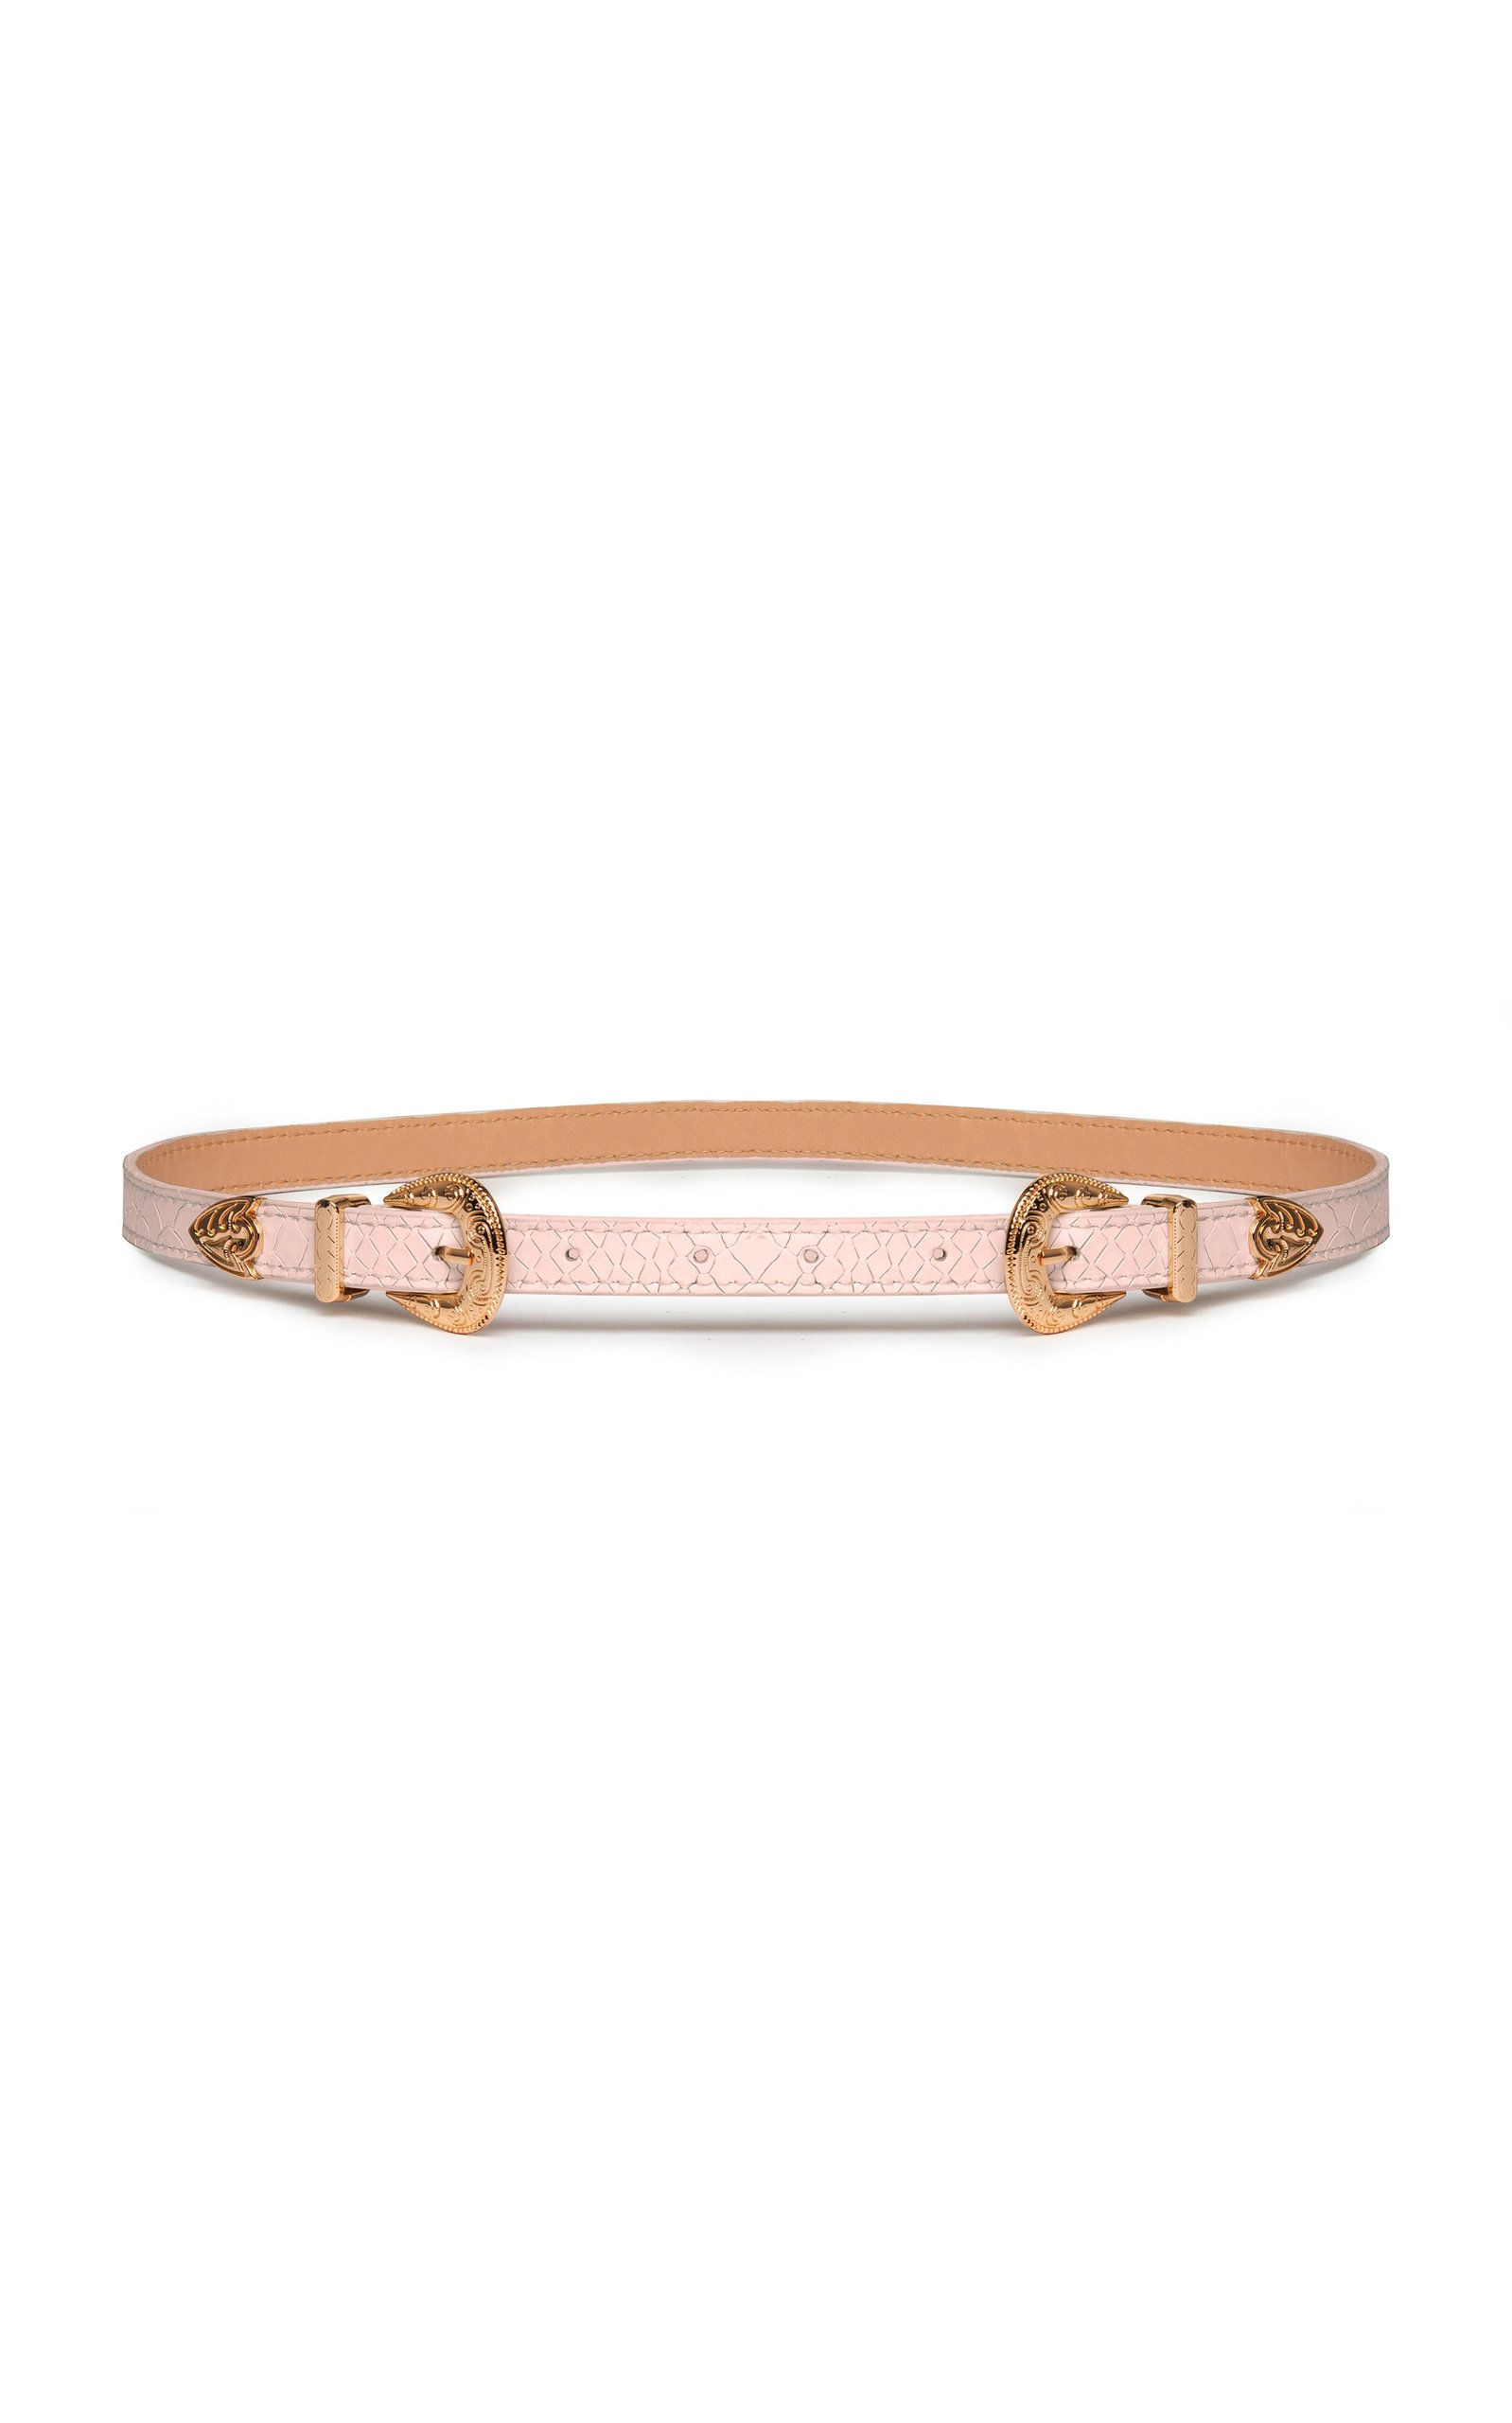 Alice McCall I Ve Still Got You Belt  a01258dcca6a